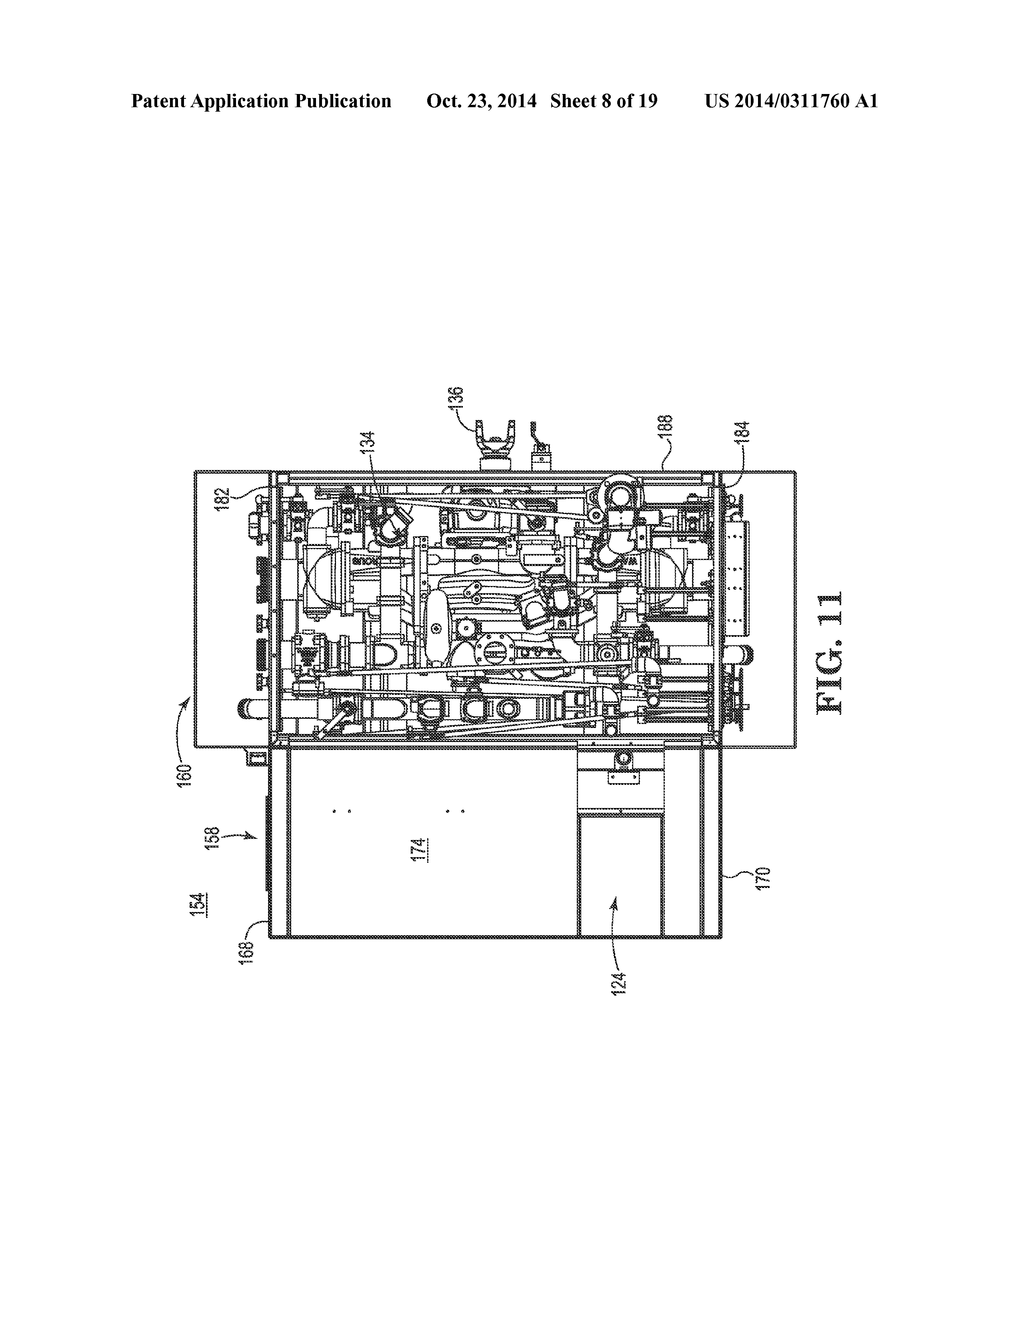 hight resolution of top access to a pump module of a fire truck diagram schematic and image 09